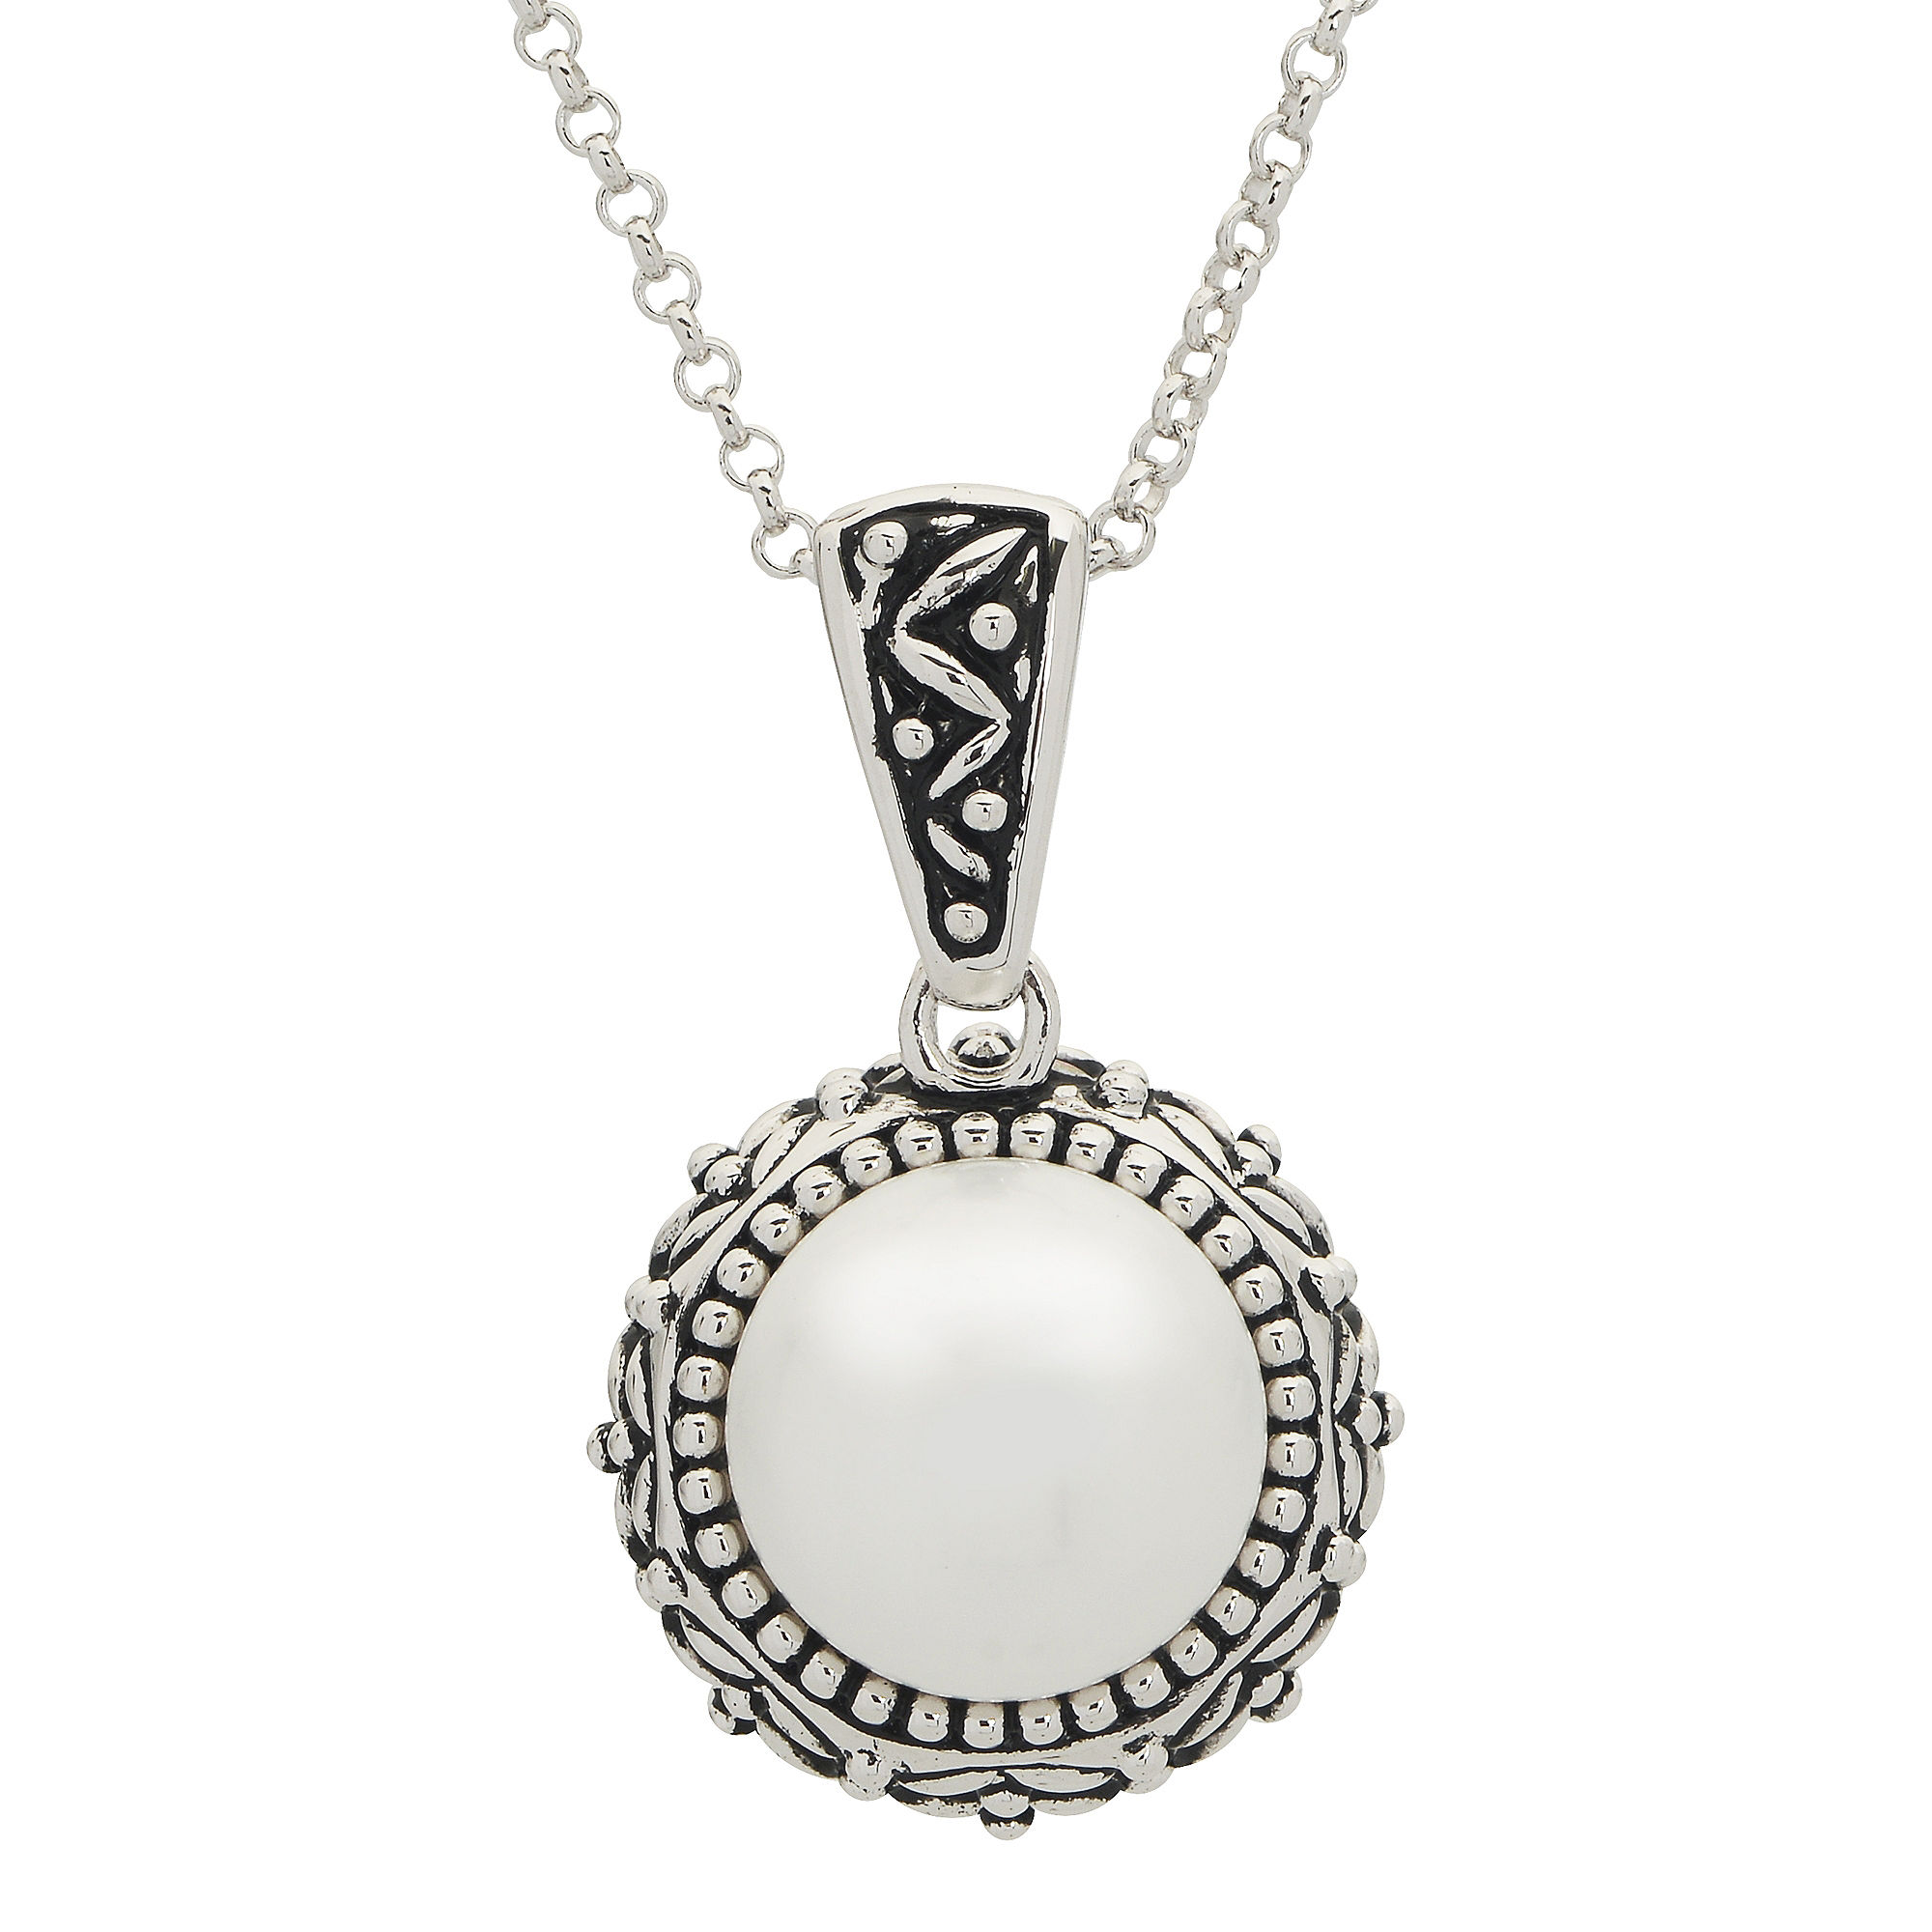 11.5-12Mm Cultured Freshwater Button Pearl Sterling Silver Pendant